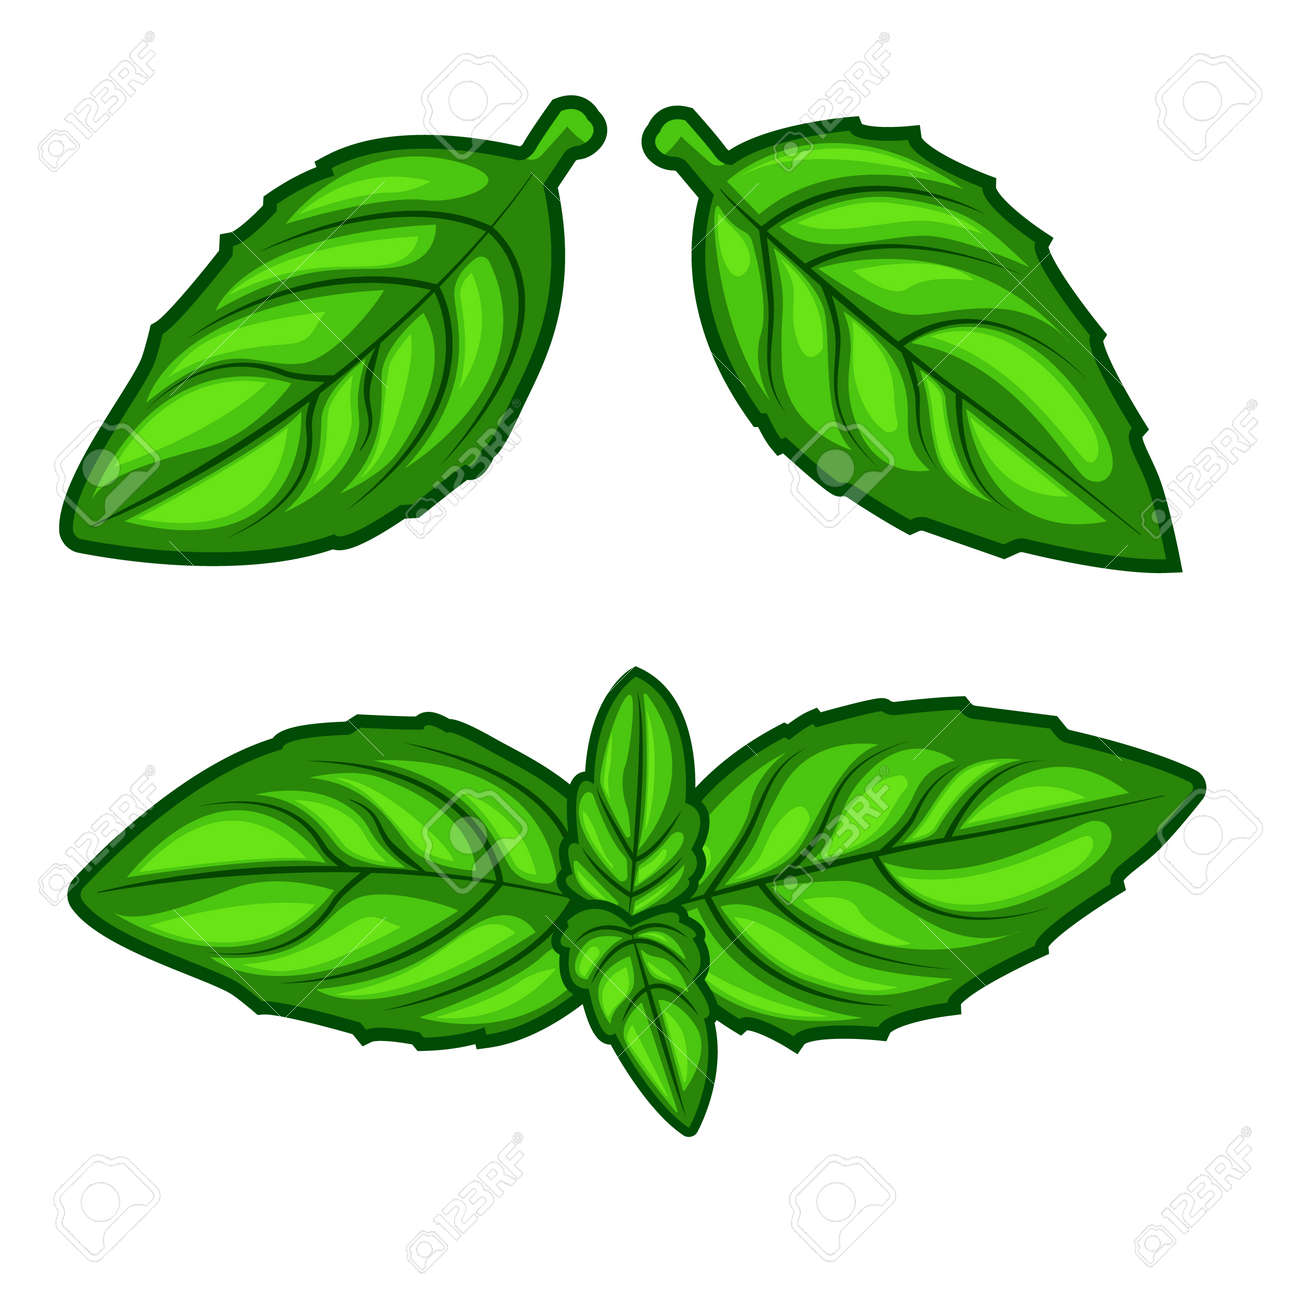 Fresh green basil herb leaves isolated on white background. Top view. Food background. - 120605870